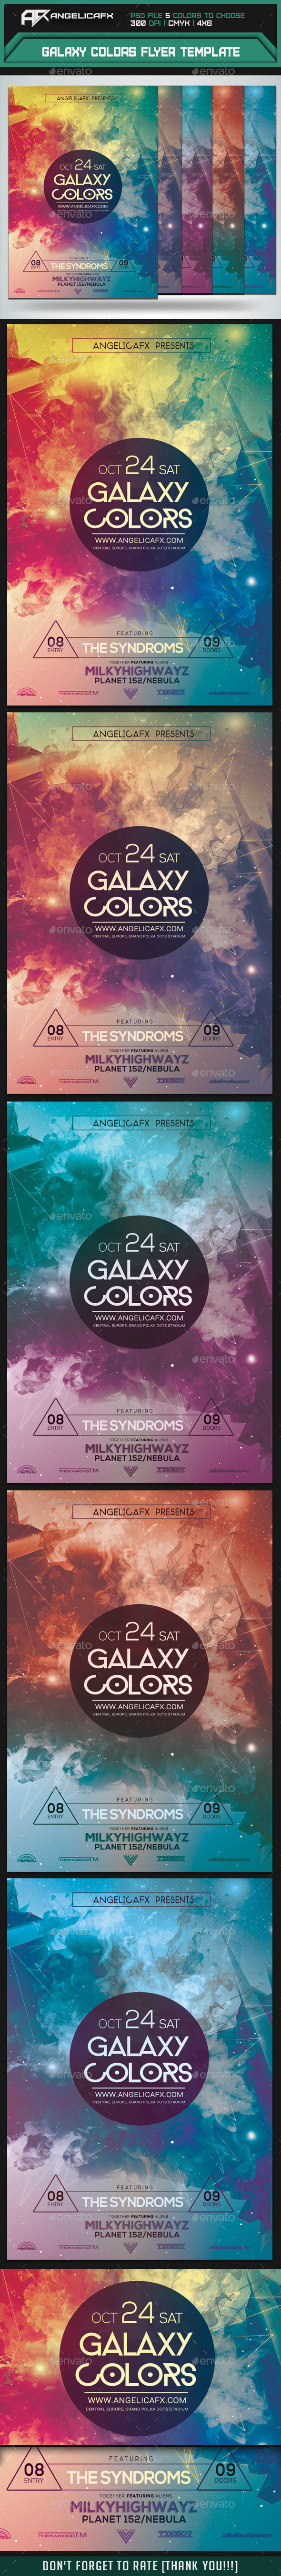 Galaxy Colors Flyer Template